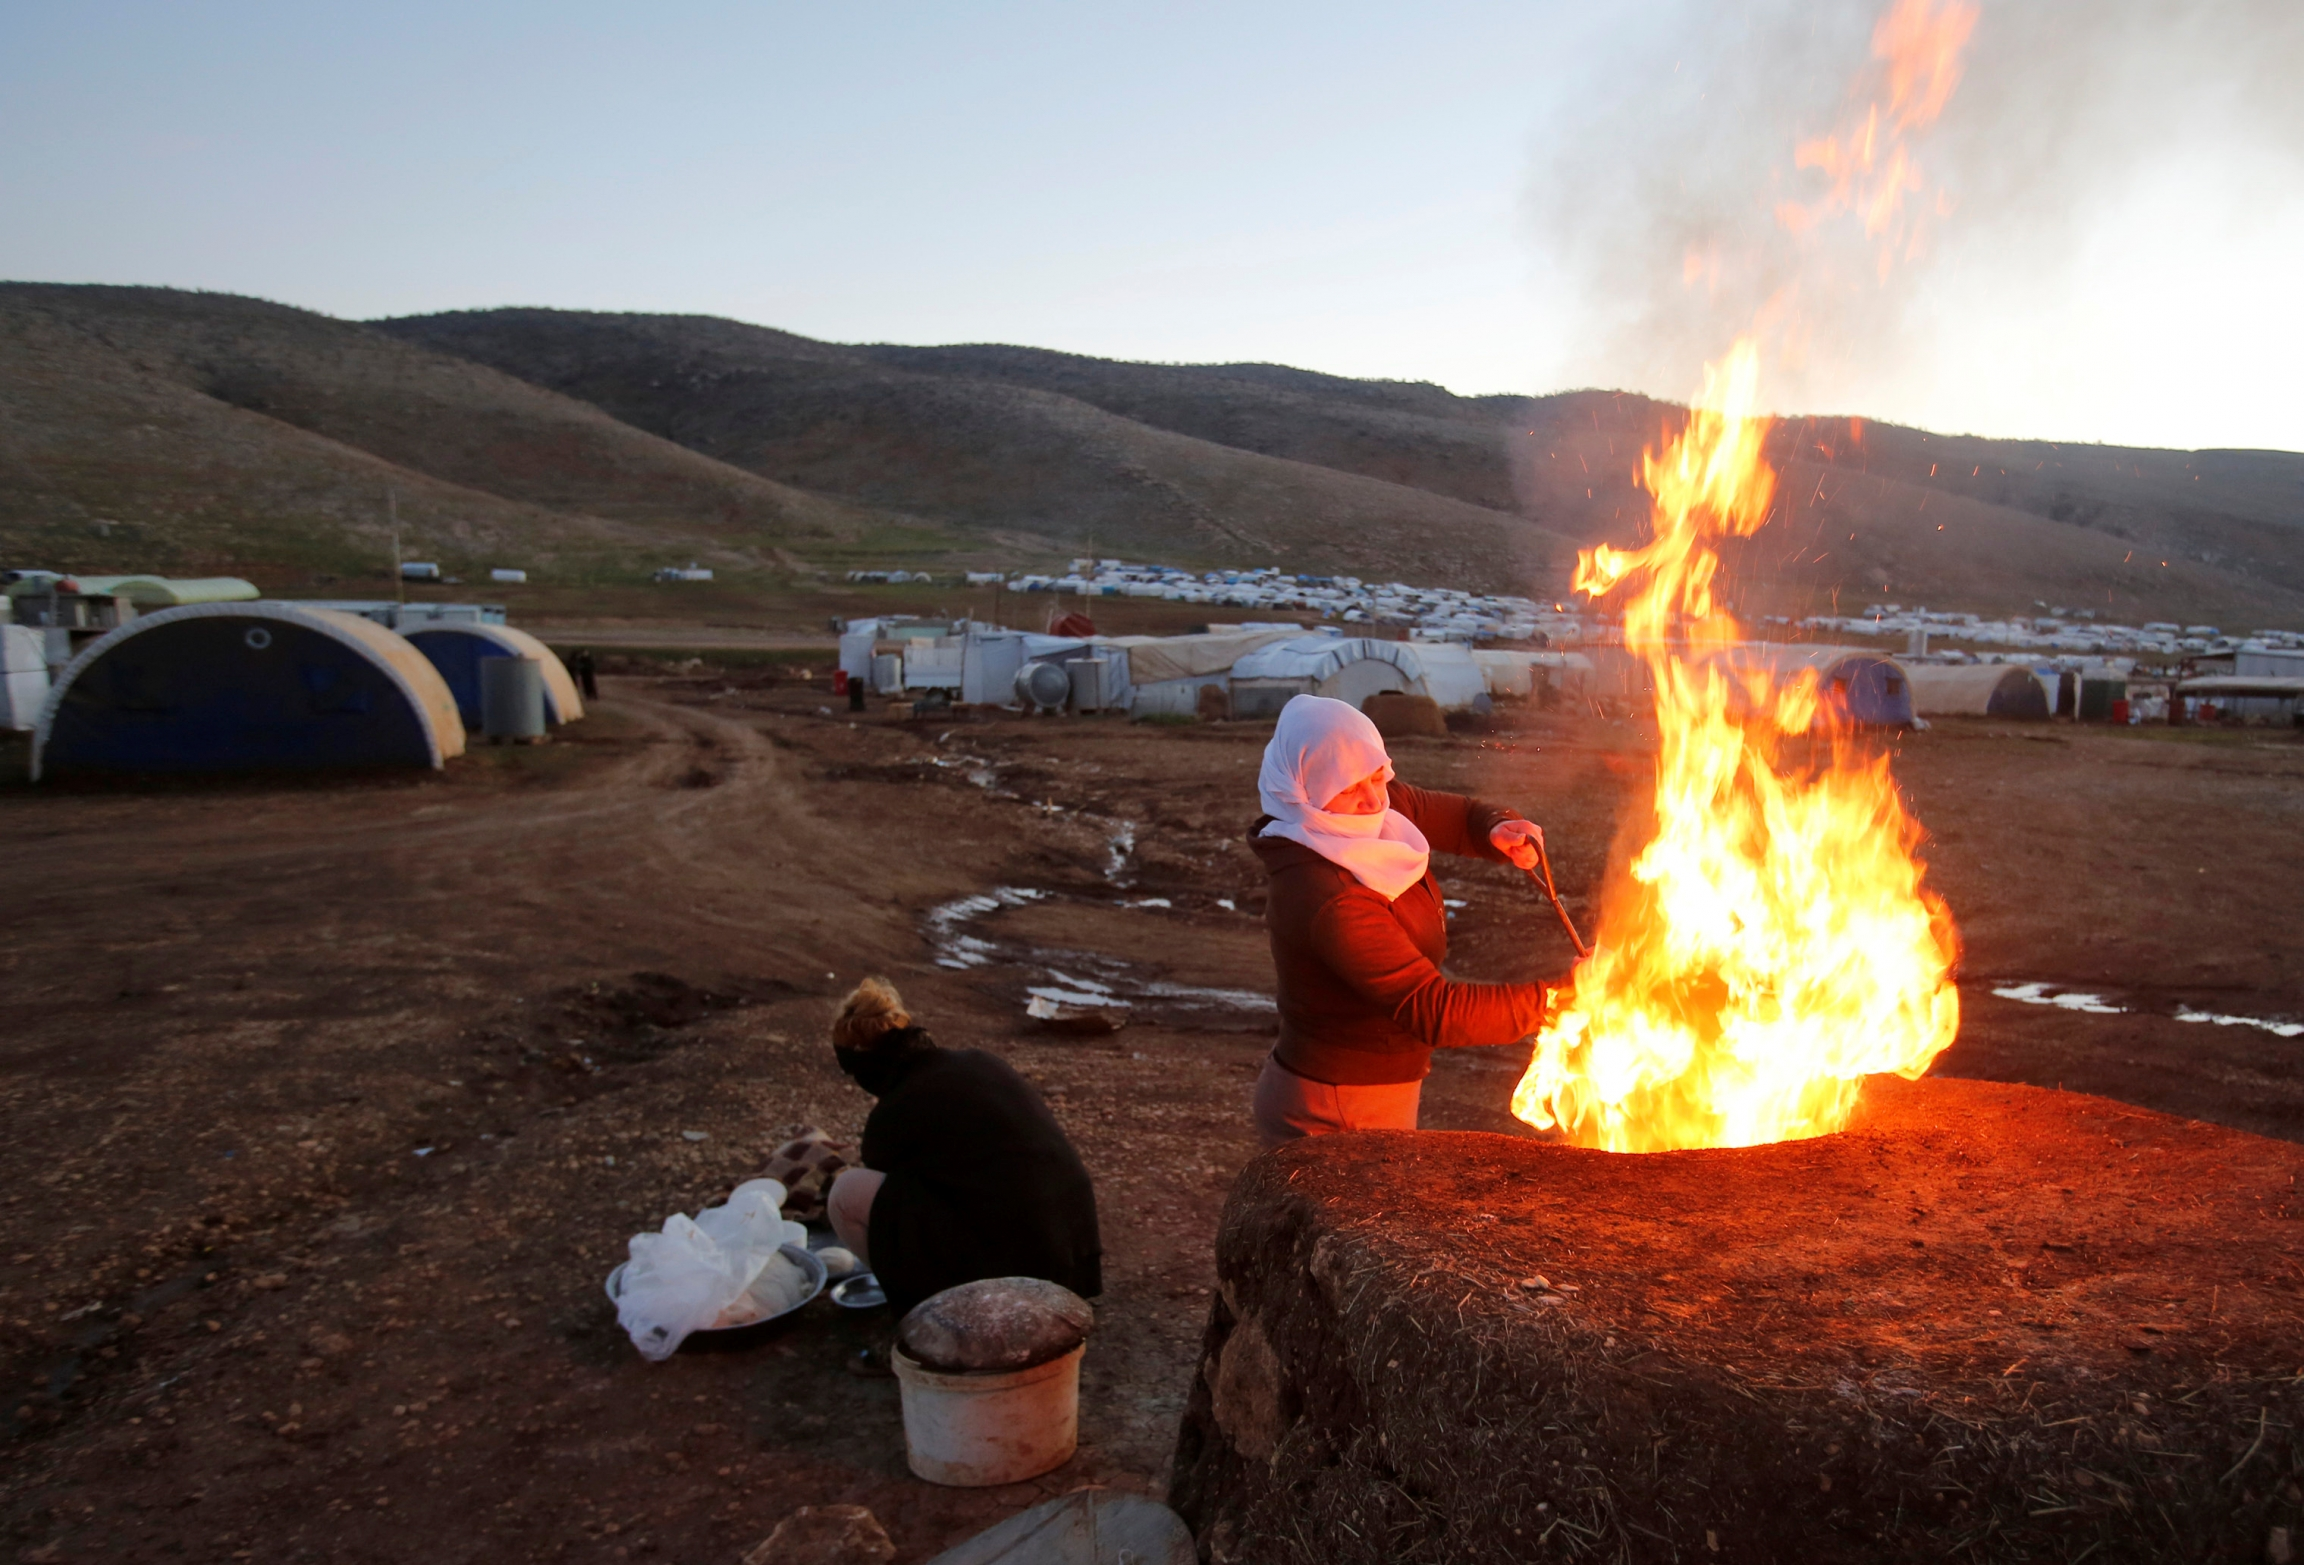 A woman prepares bread with huge fire at refugee camp near white tents.